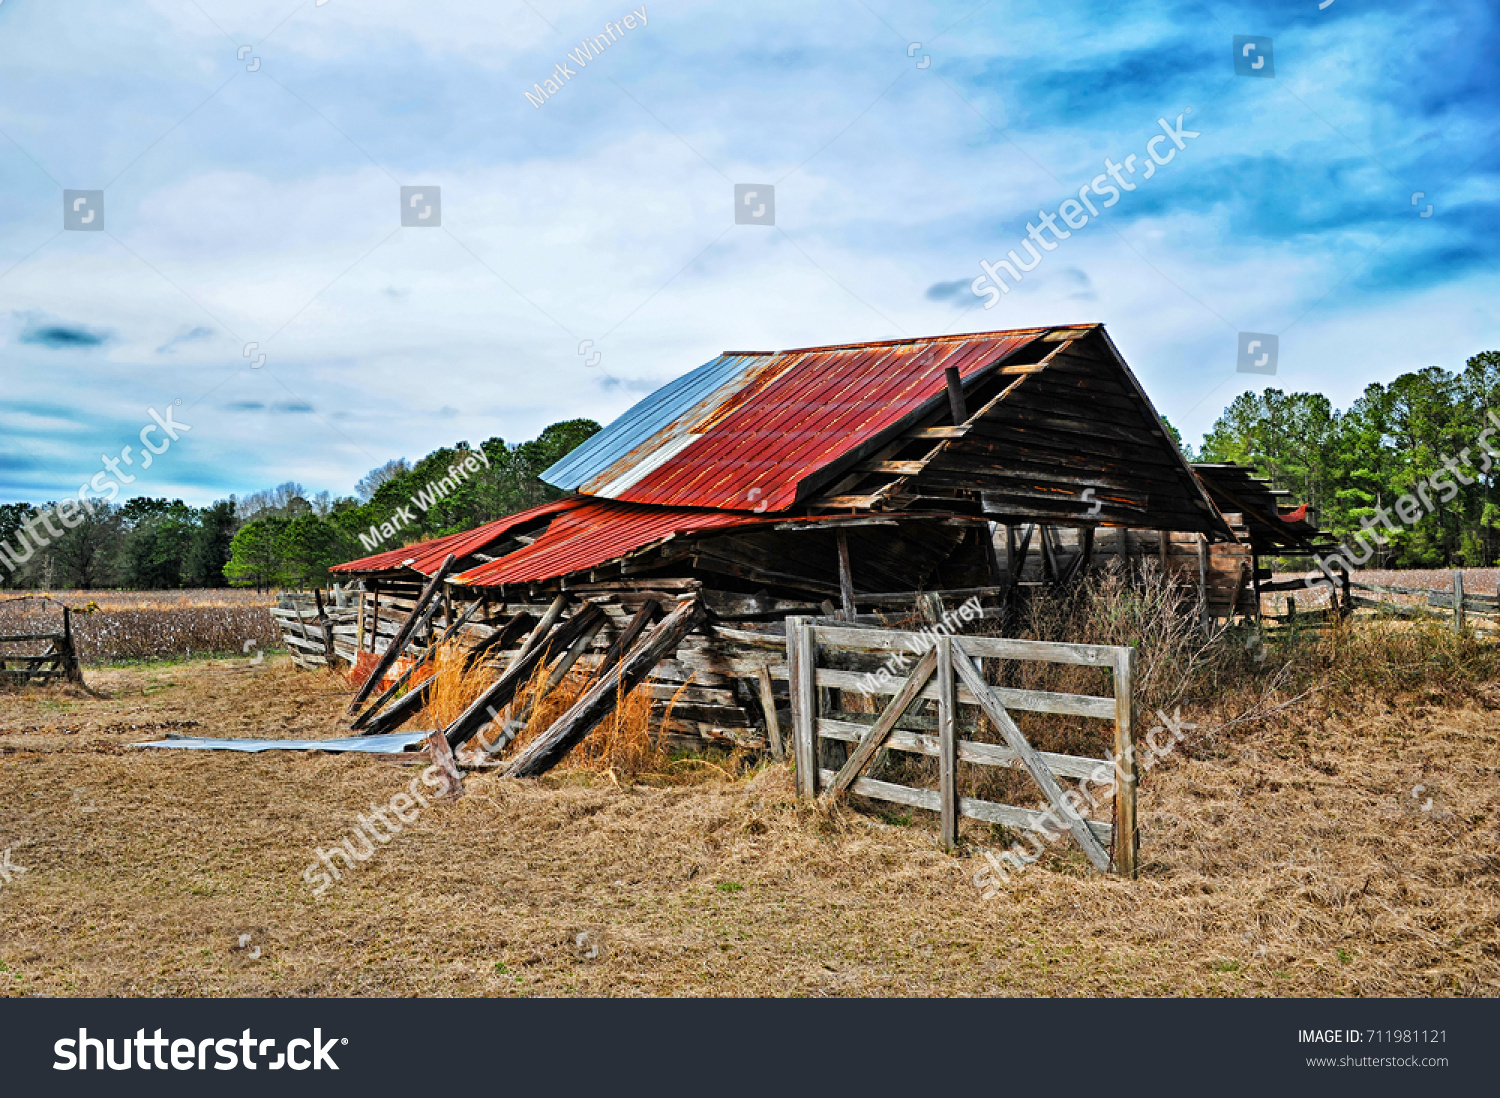 stock-photo-an-abandoned-rustic-barn-in-